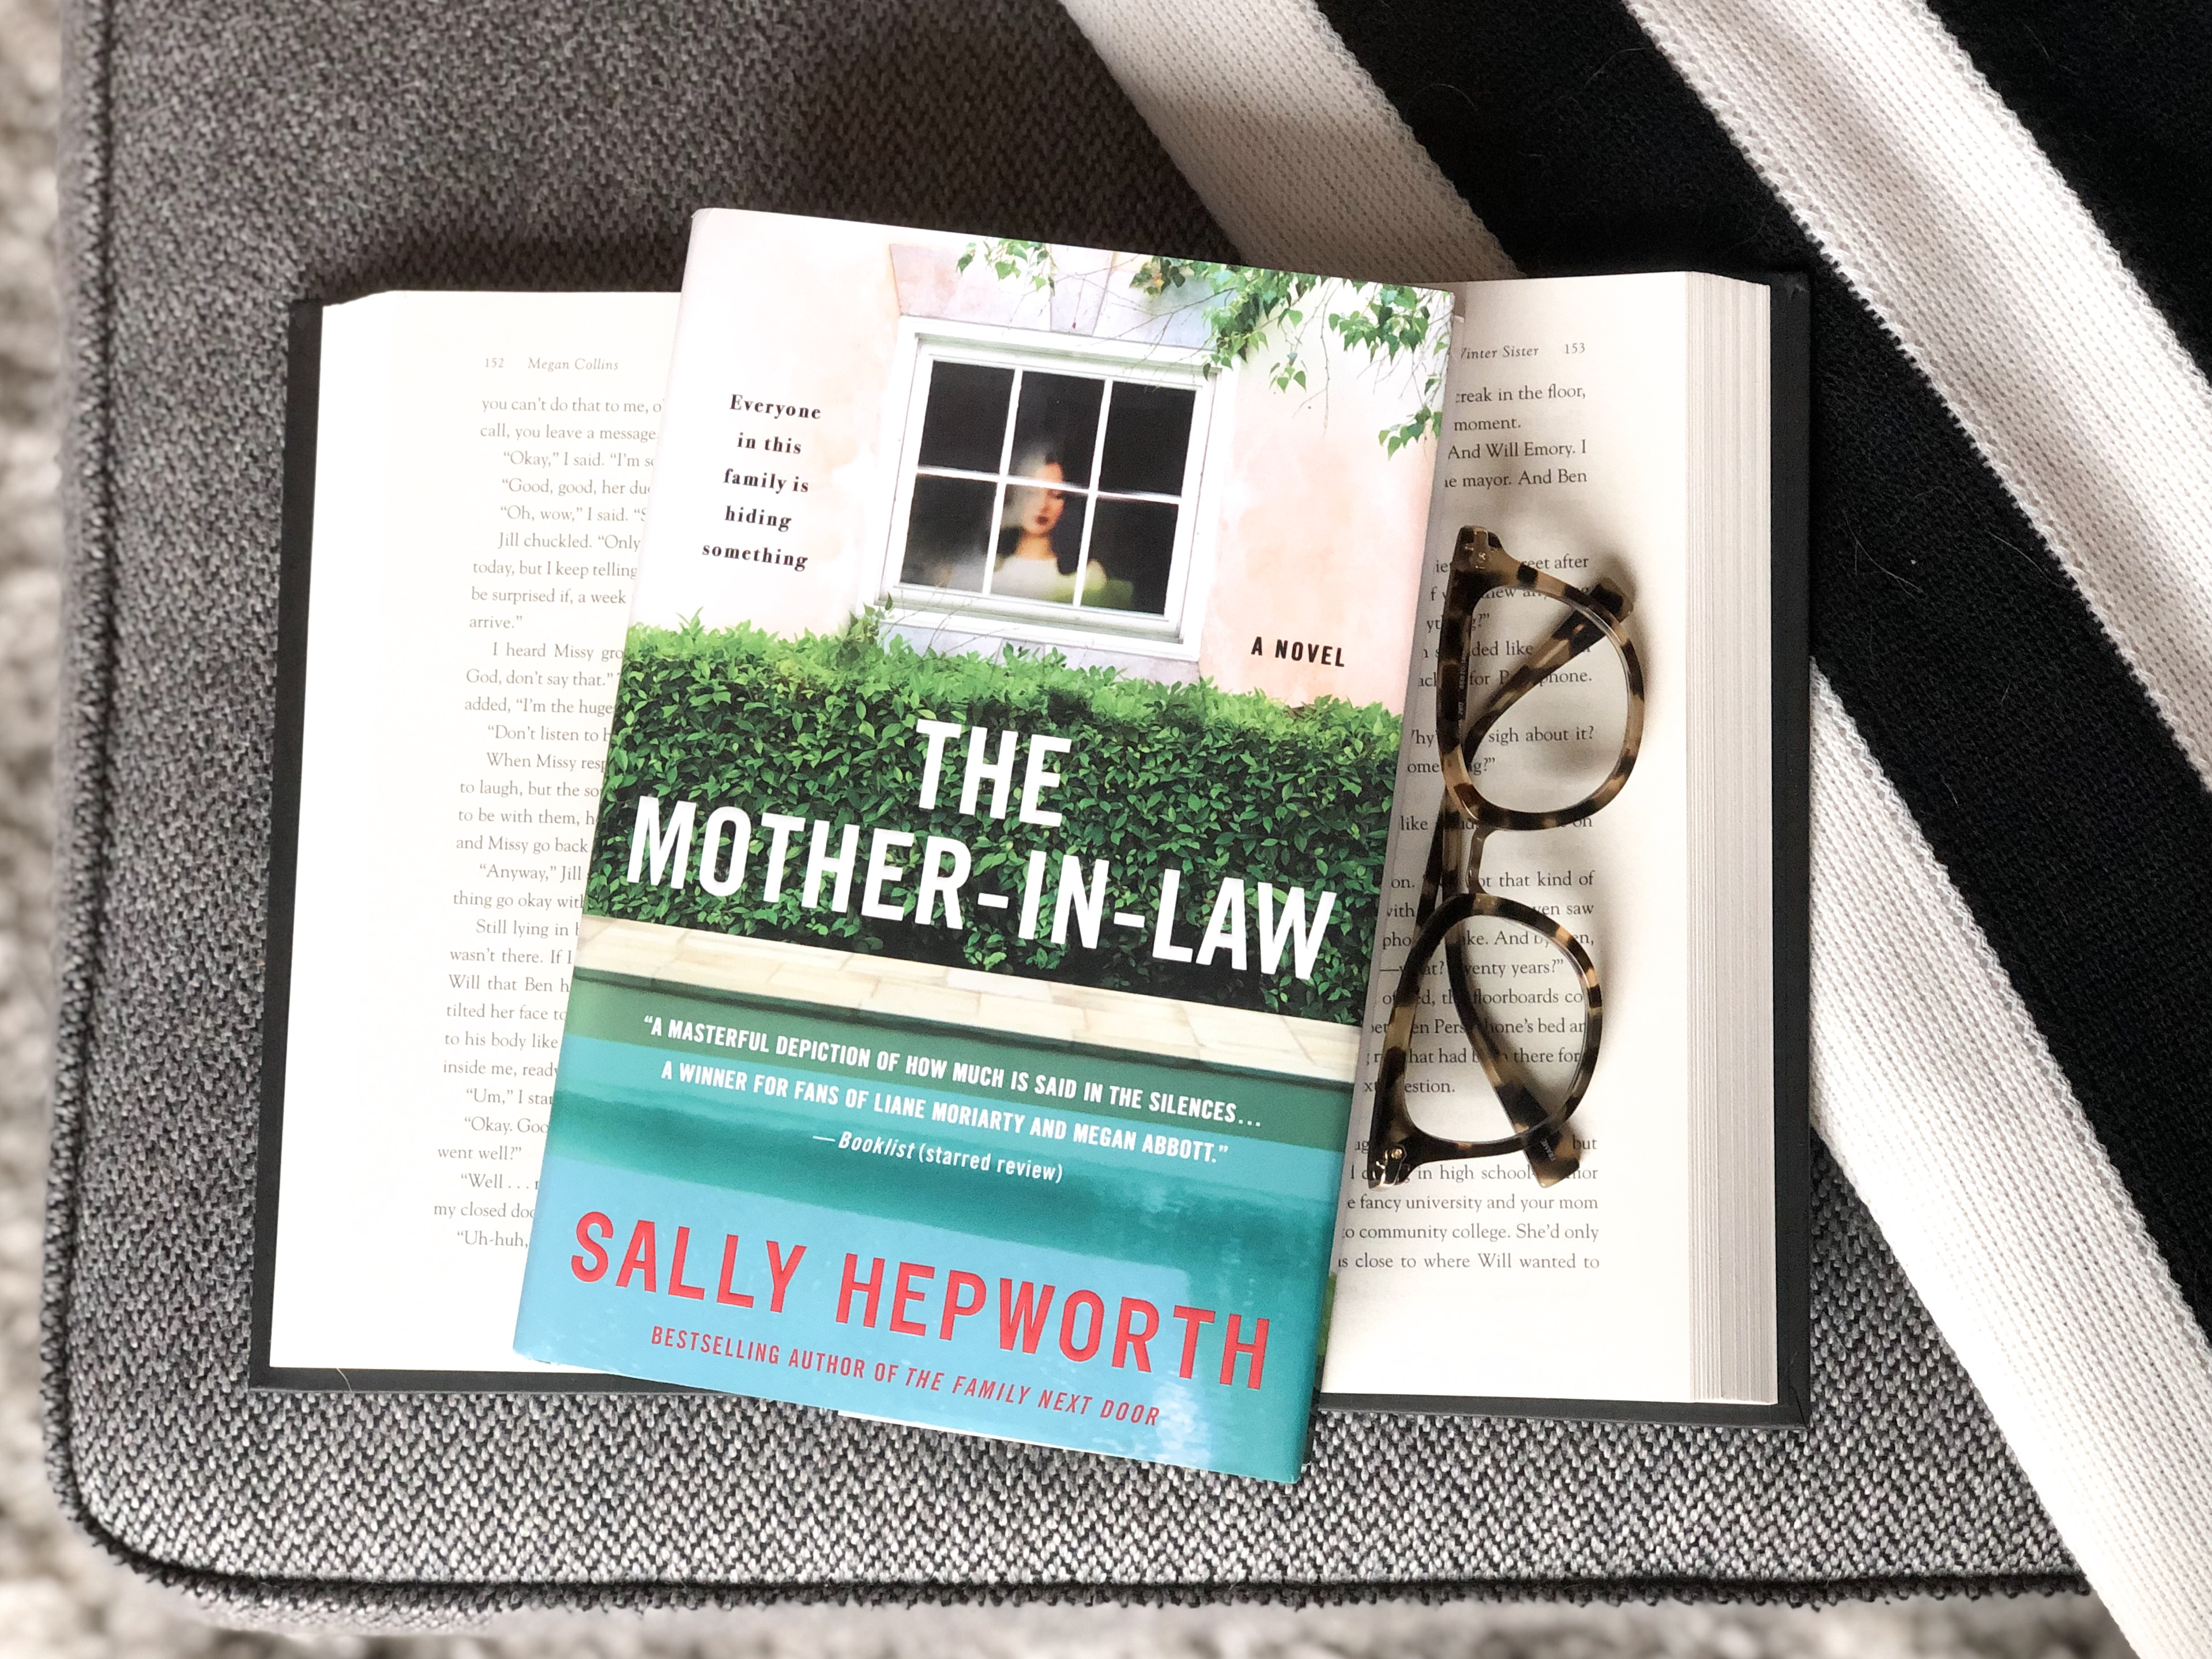 The Mother-in-Law, Sally Hepworth